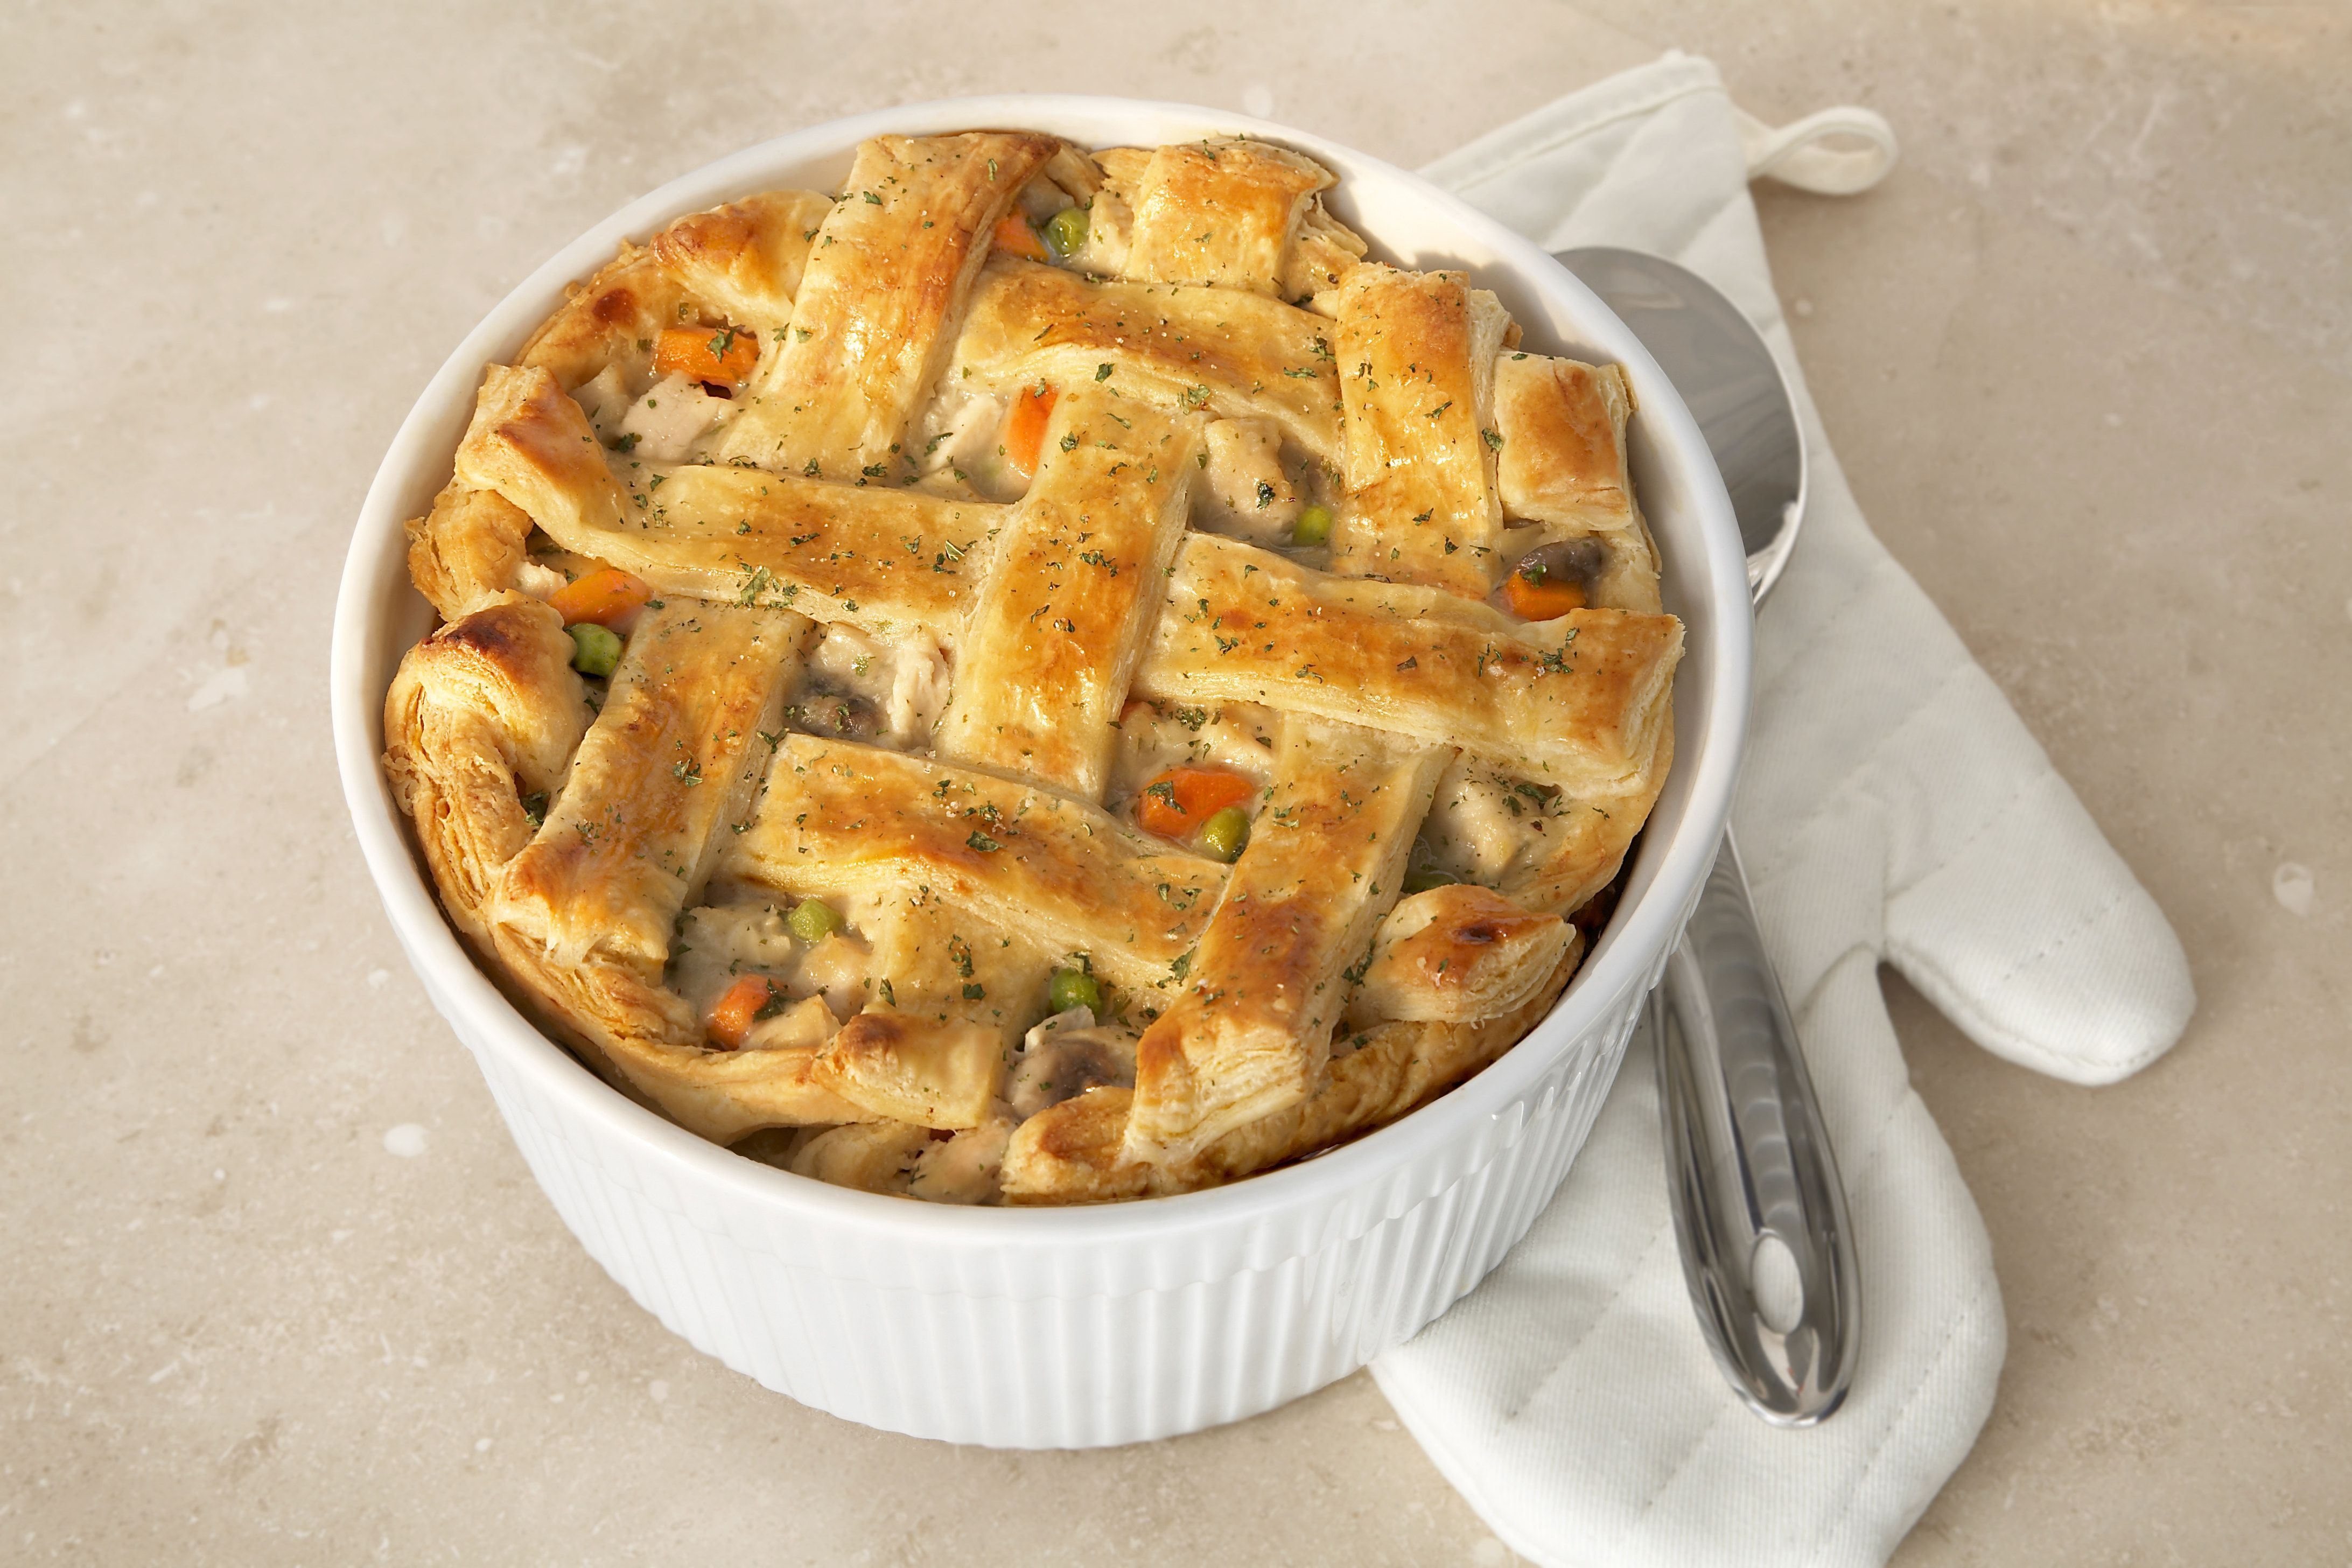 The Ultimate Chicken Pot Pie - Puff pastry was great for any insides.